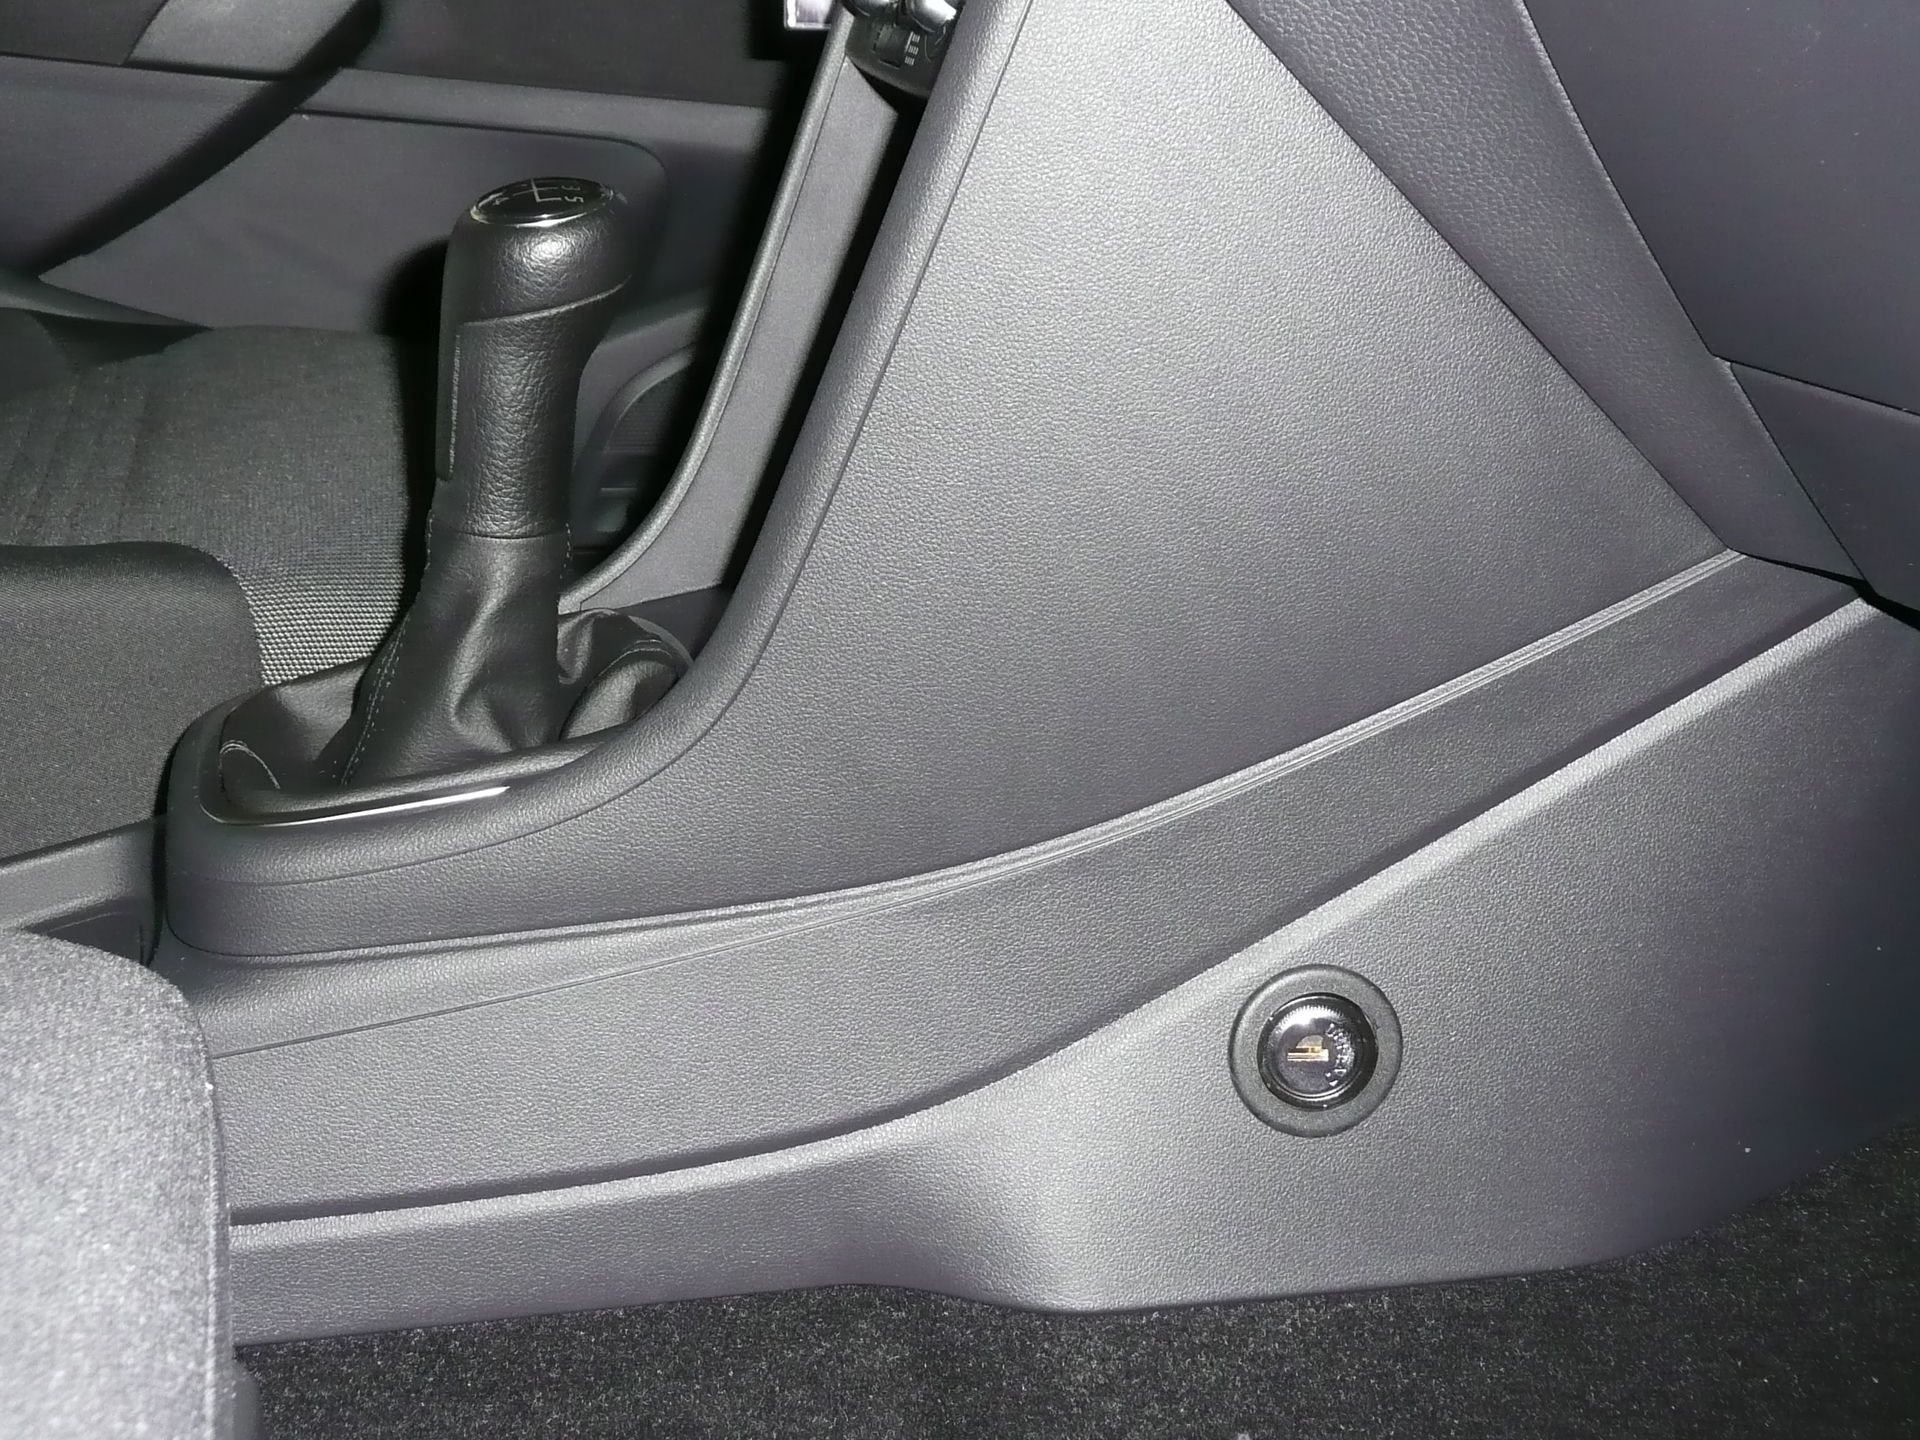 VW Polo 2009 - Pin-lock